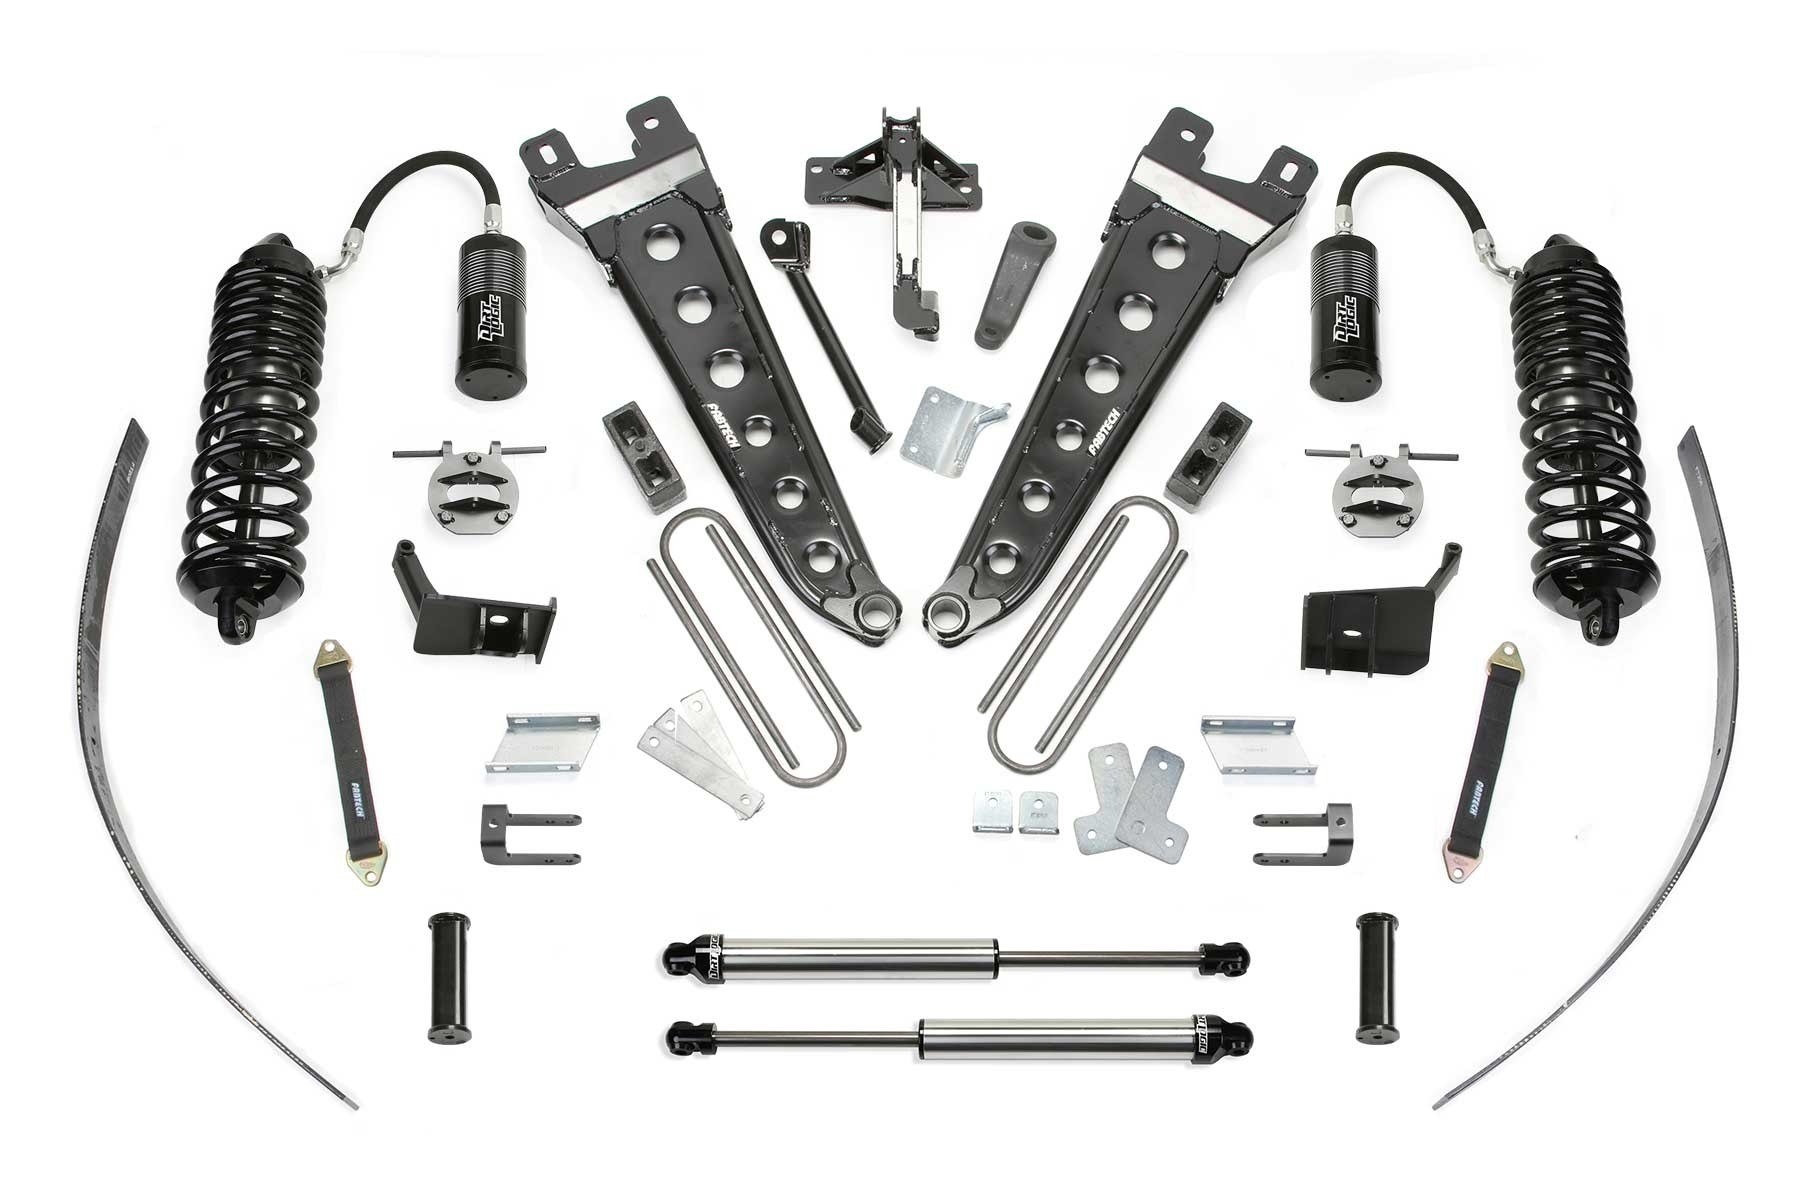 FABTECH 2011-16 FORD F250 4WD-8″ RADIUS ARM SYSTEM W/ FRONT DIRT LOGIC 4.0 RESI COILOVERS & REAR DIRT LOGIC 2.25 SHOCKS